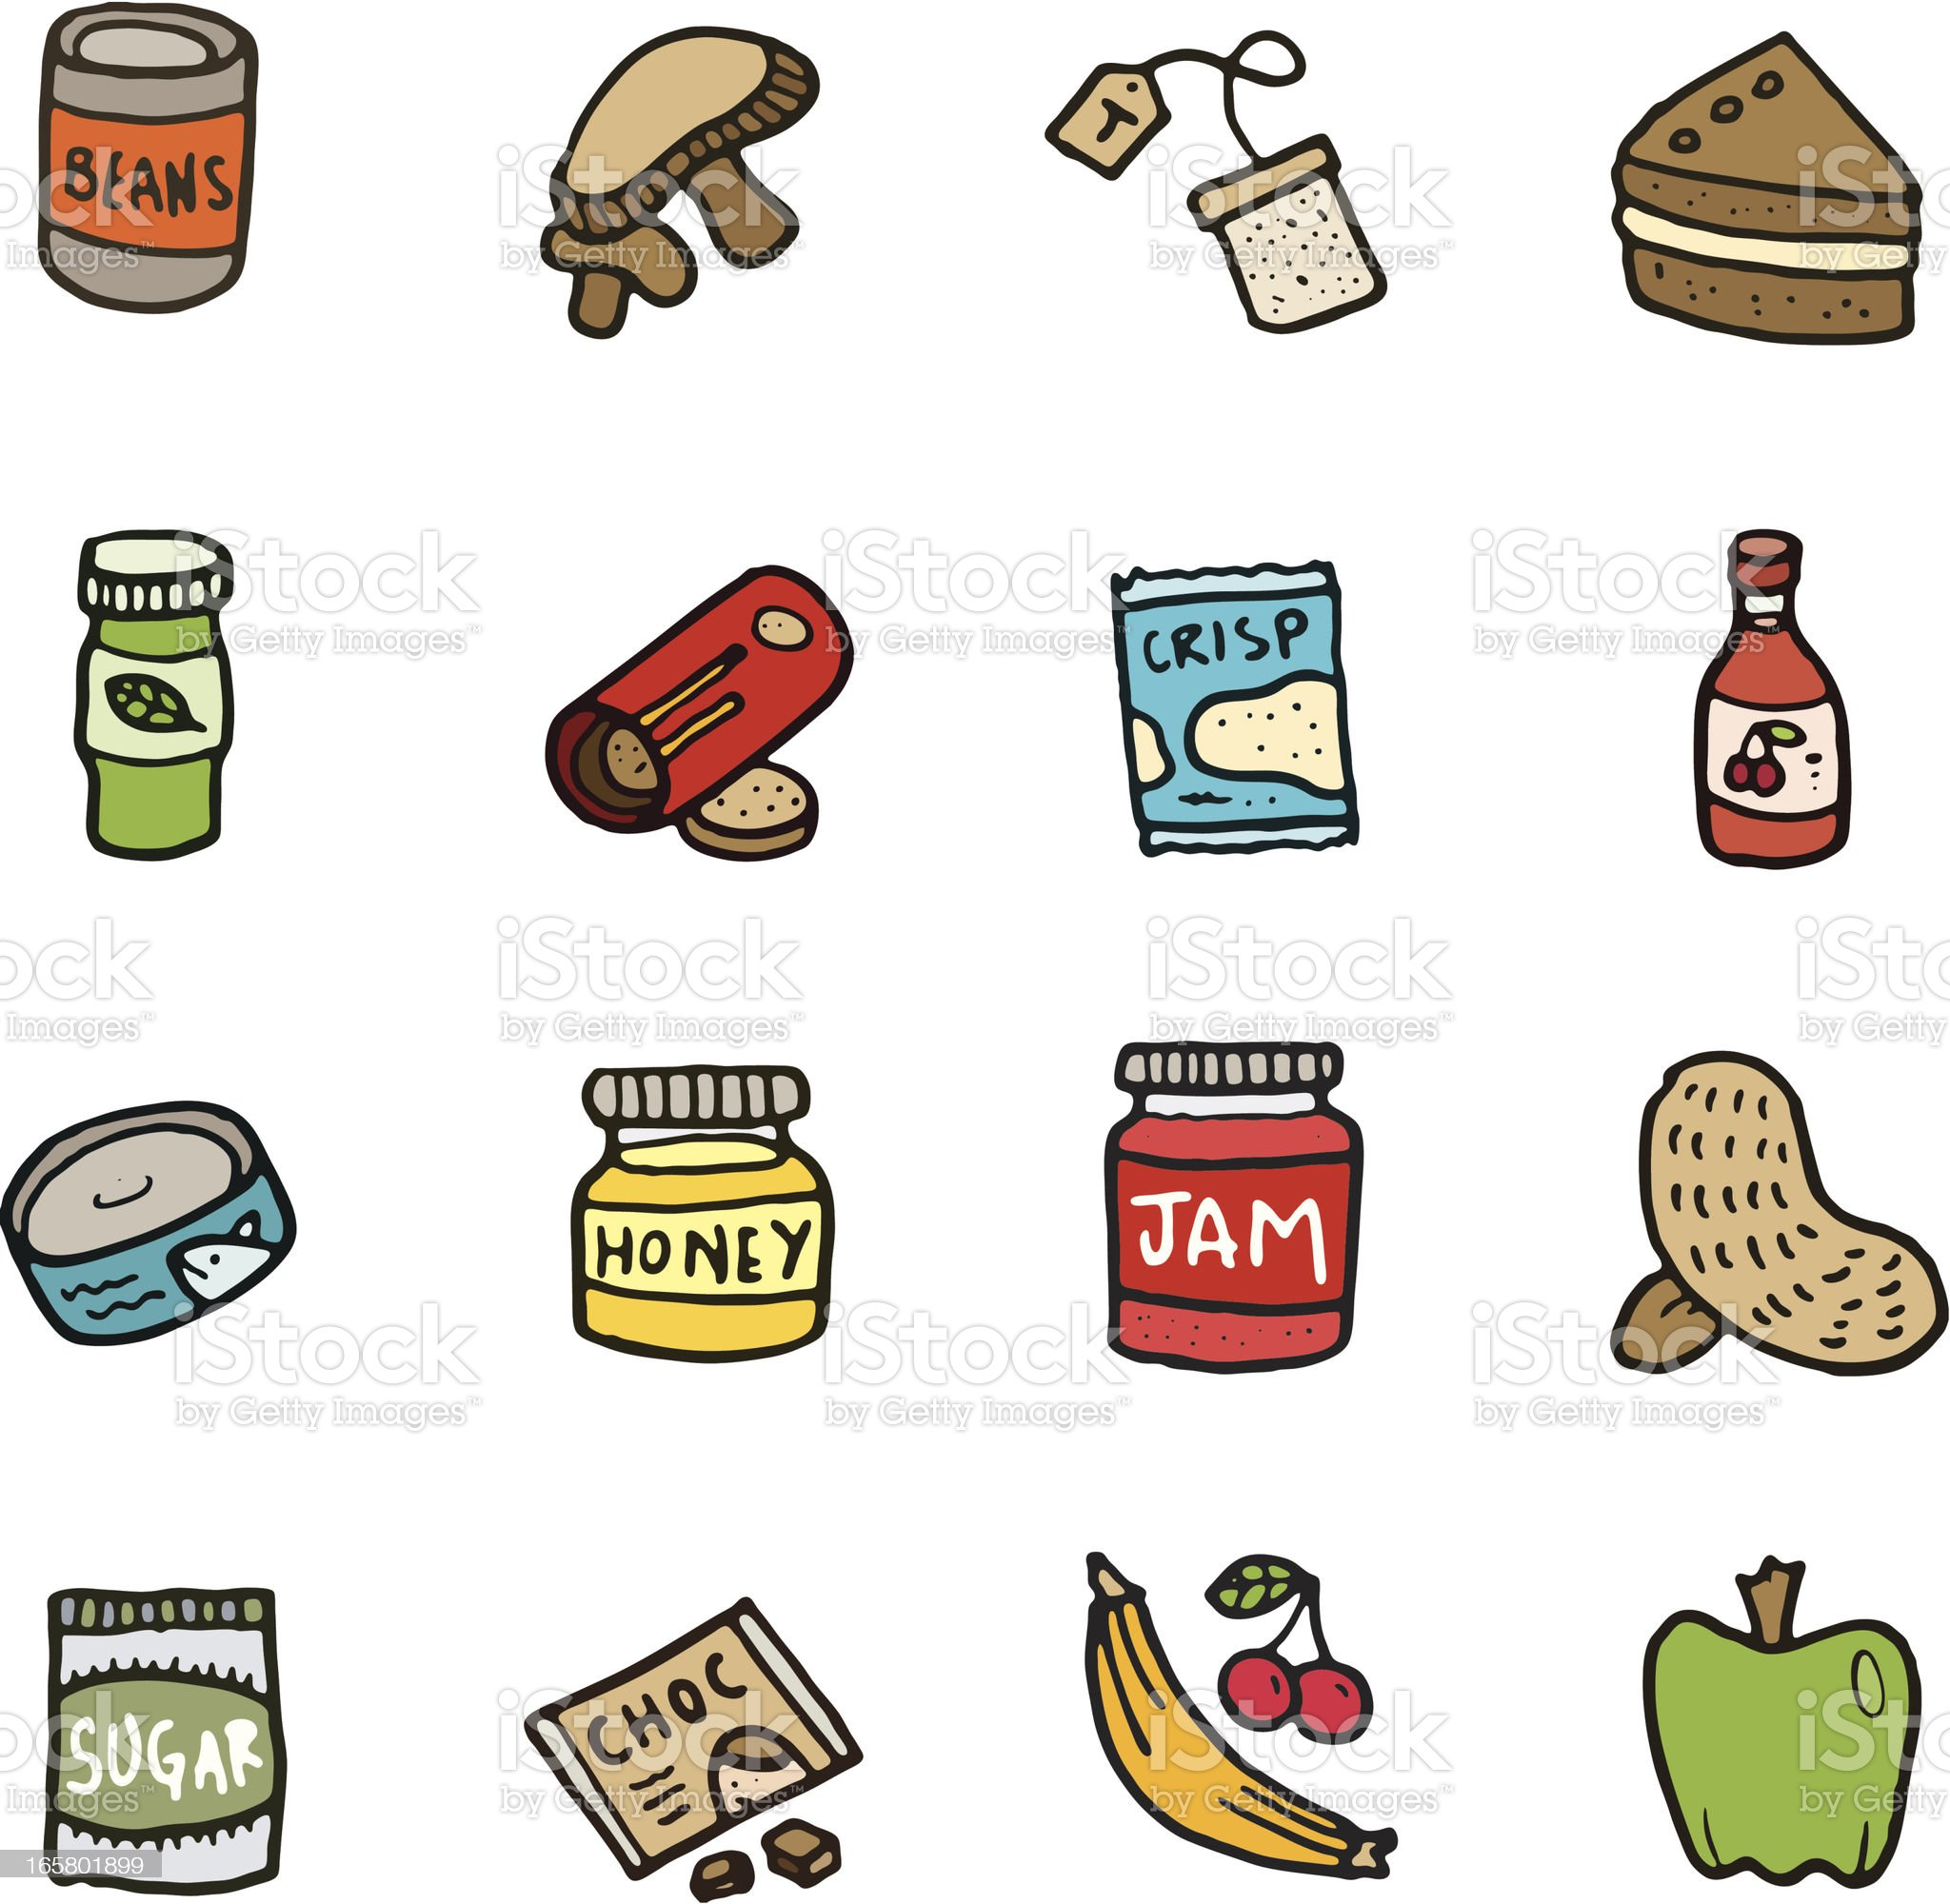 Food doodle icon set royalty-free stock vector art